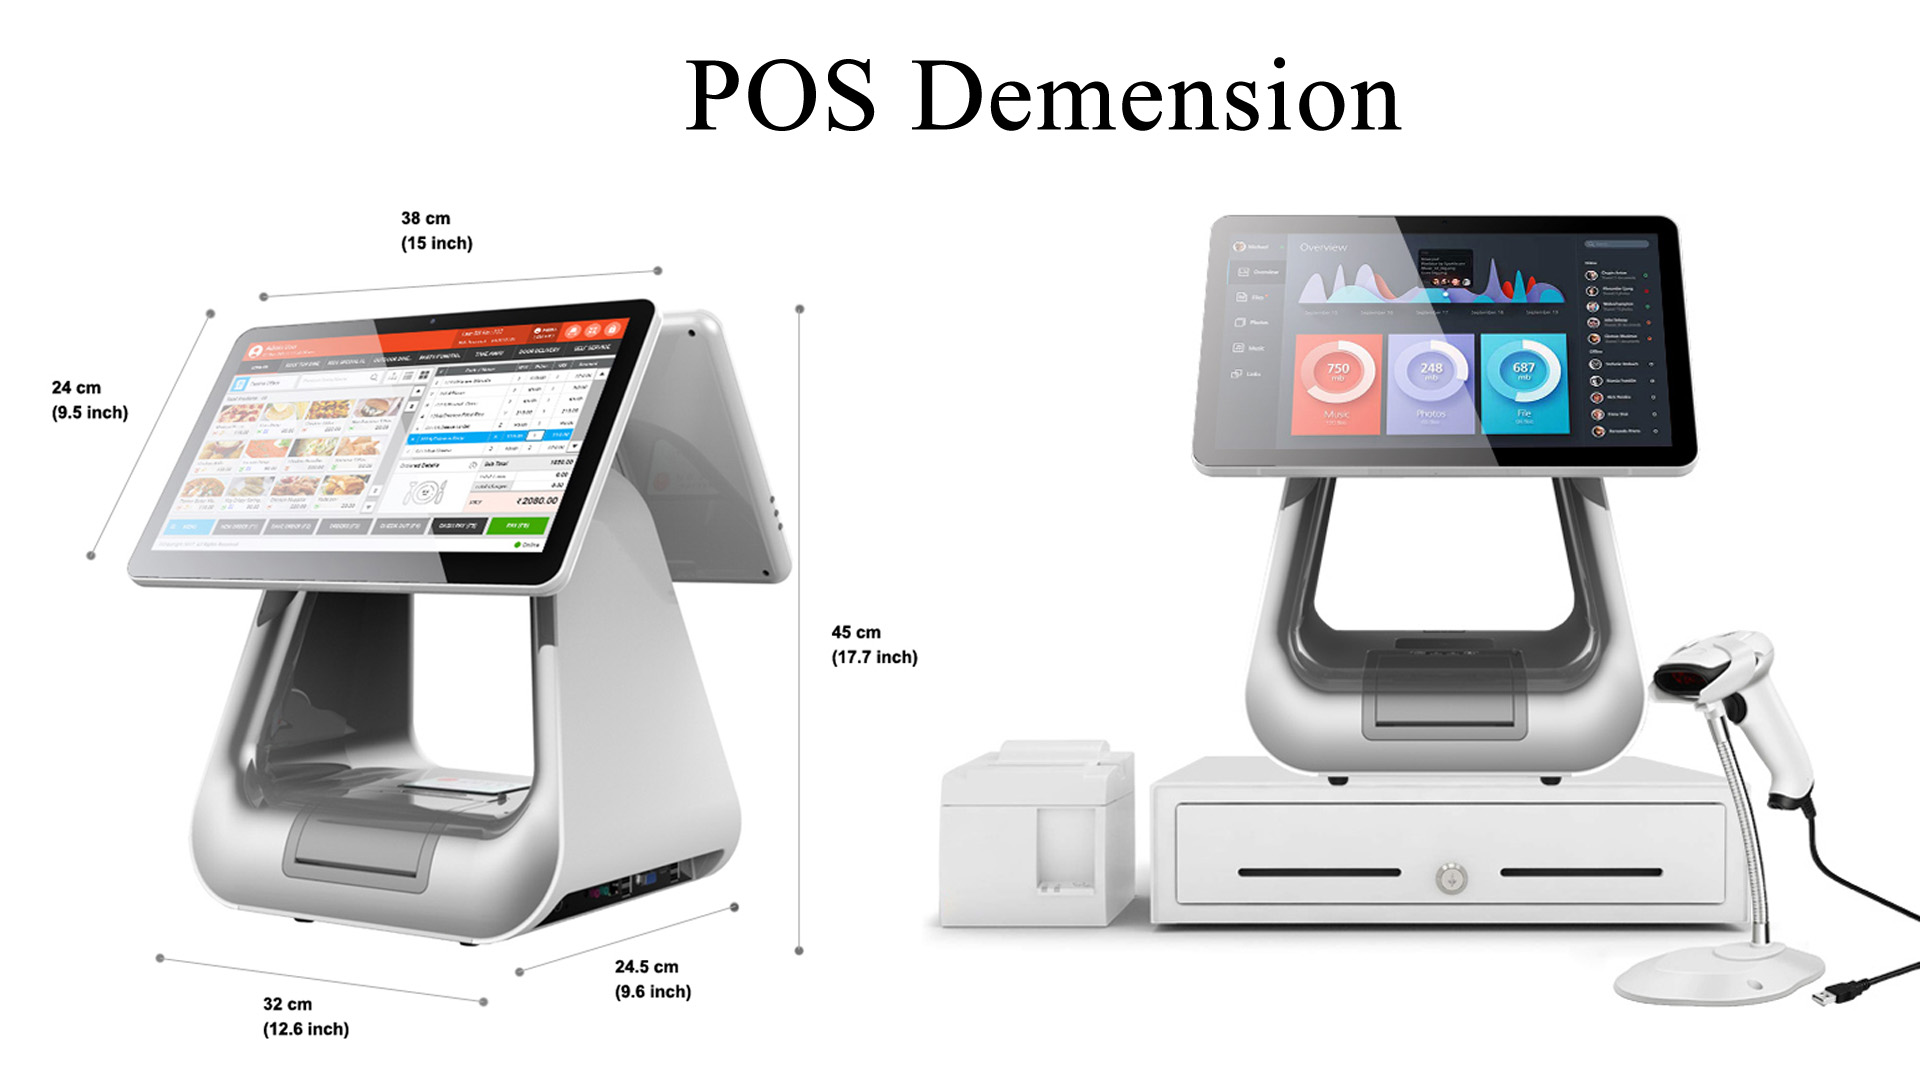 product-156-inch Windows Fashion All in One POS System KS-D for Flagship Store Hotel Shopping Mall-1